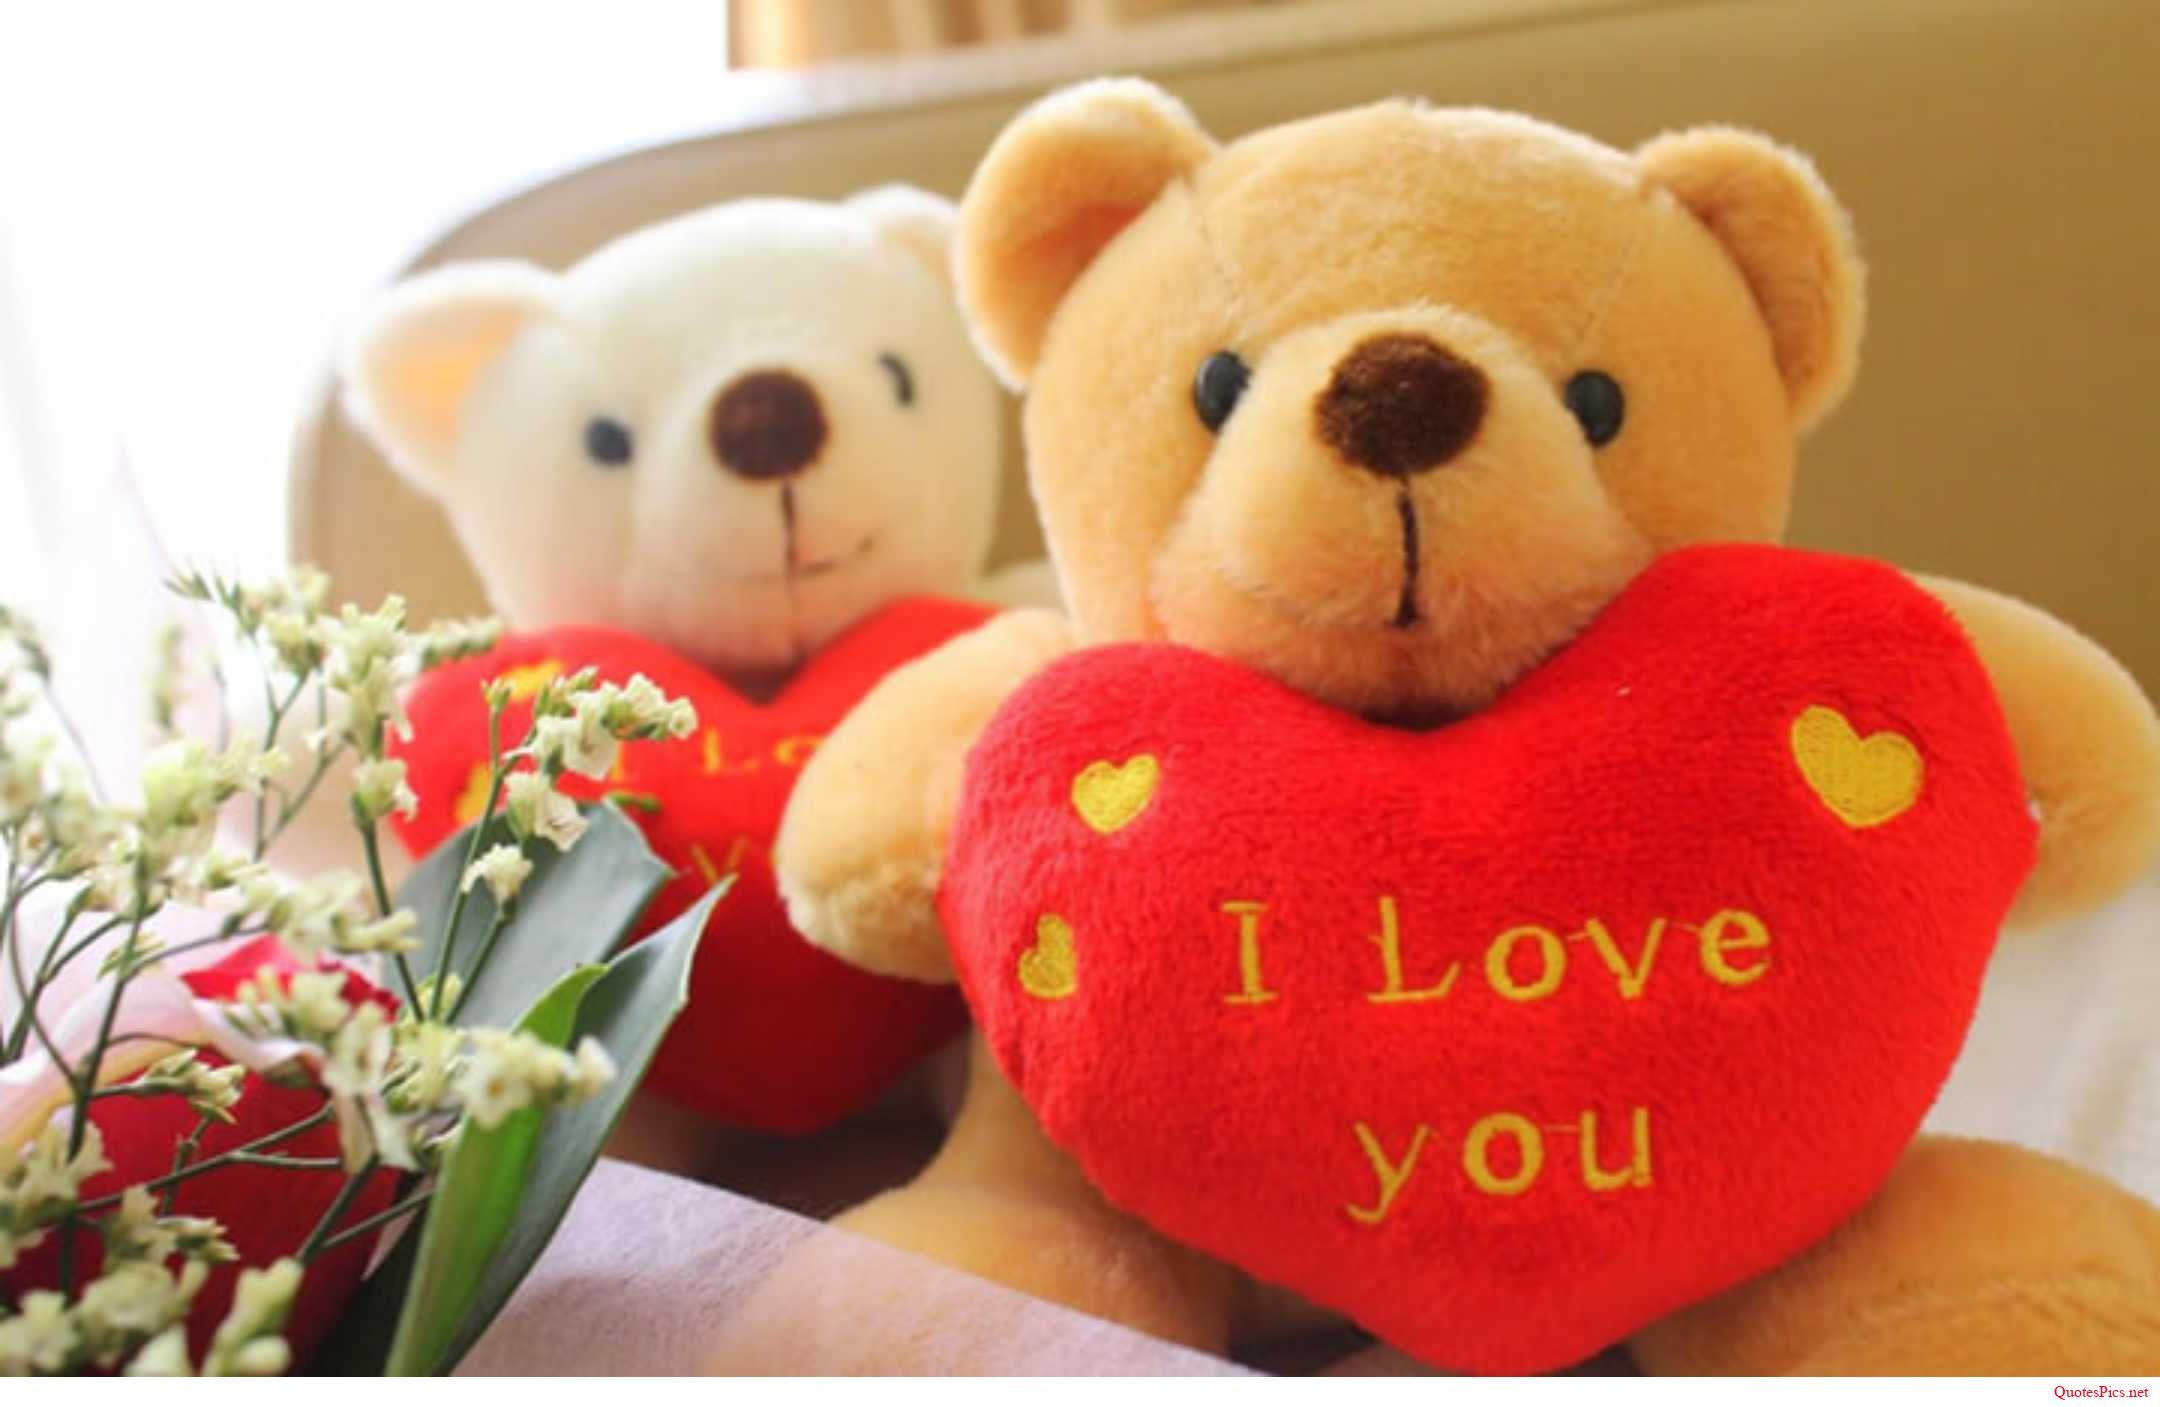 Happy Teddy Day romantic I love you images for your sexy love